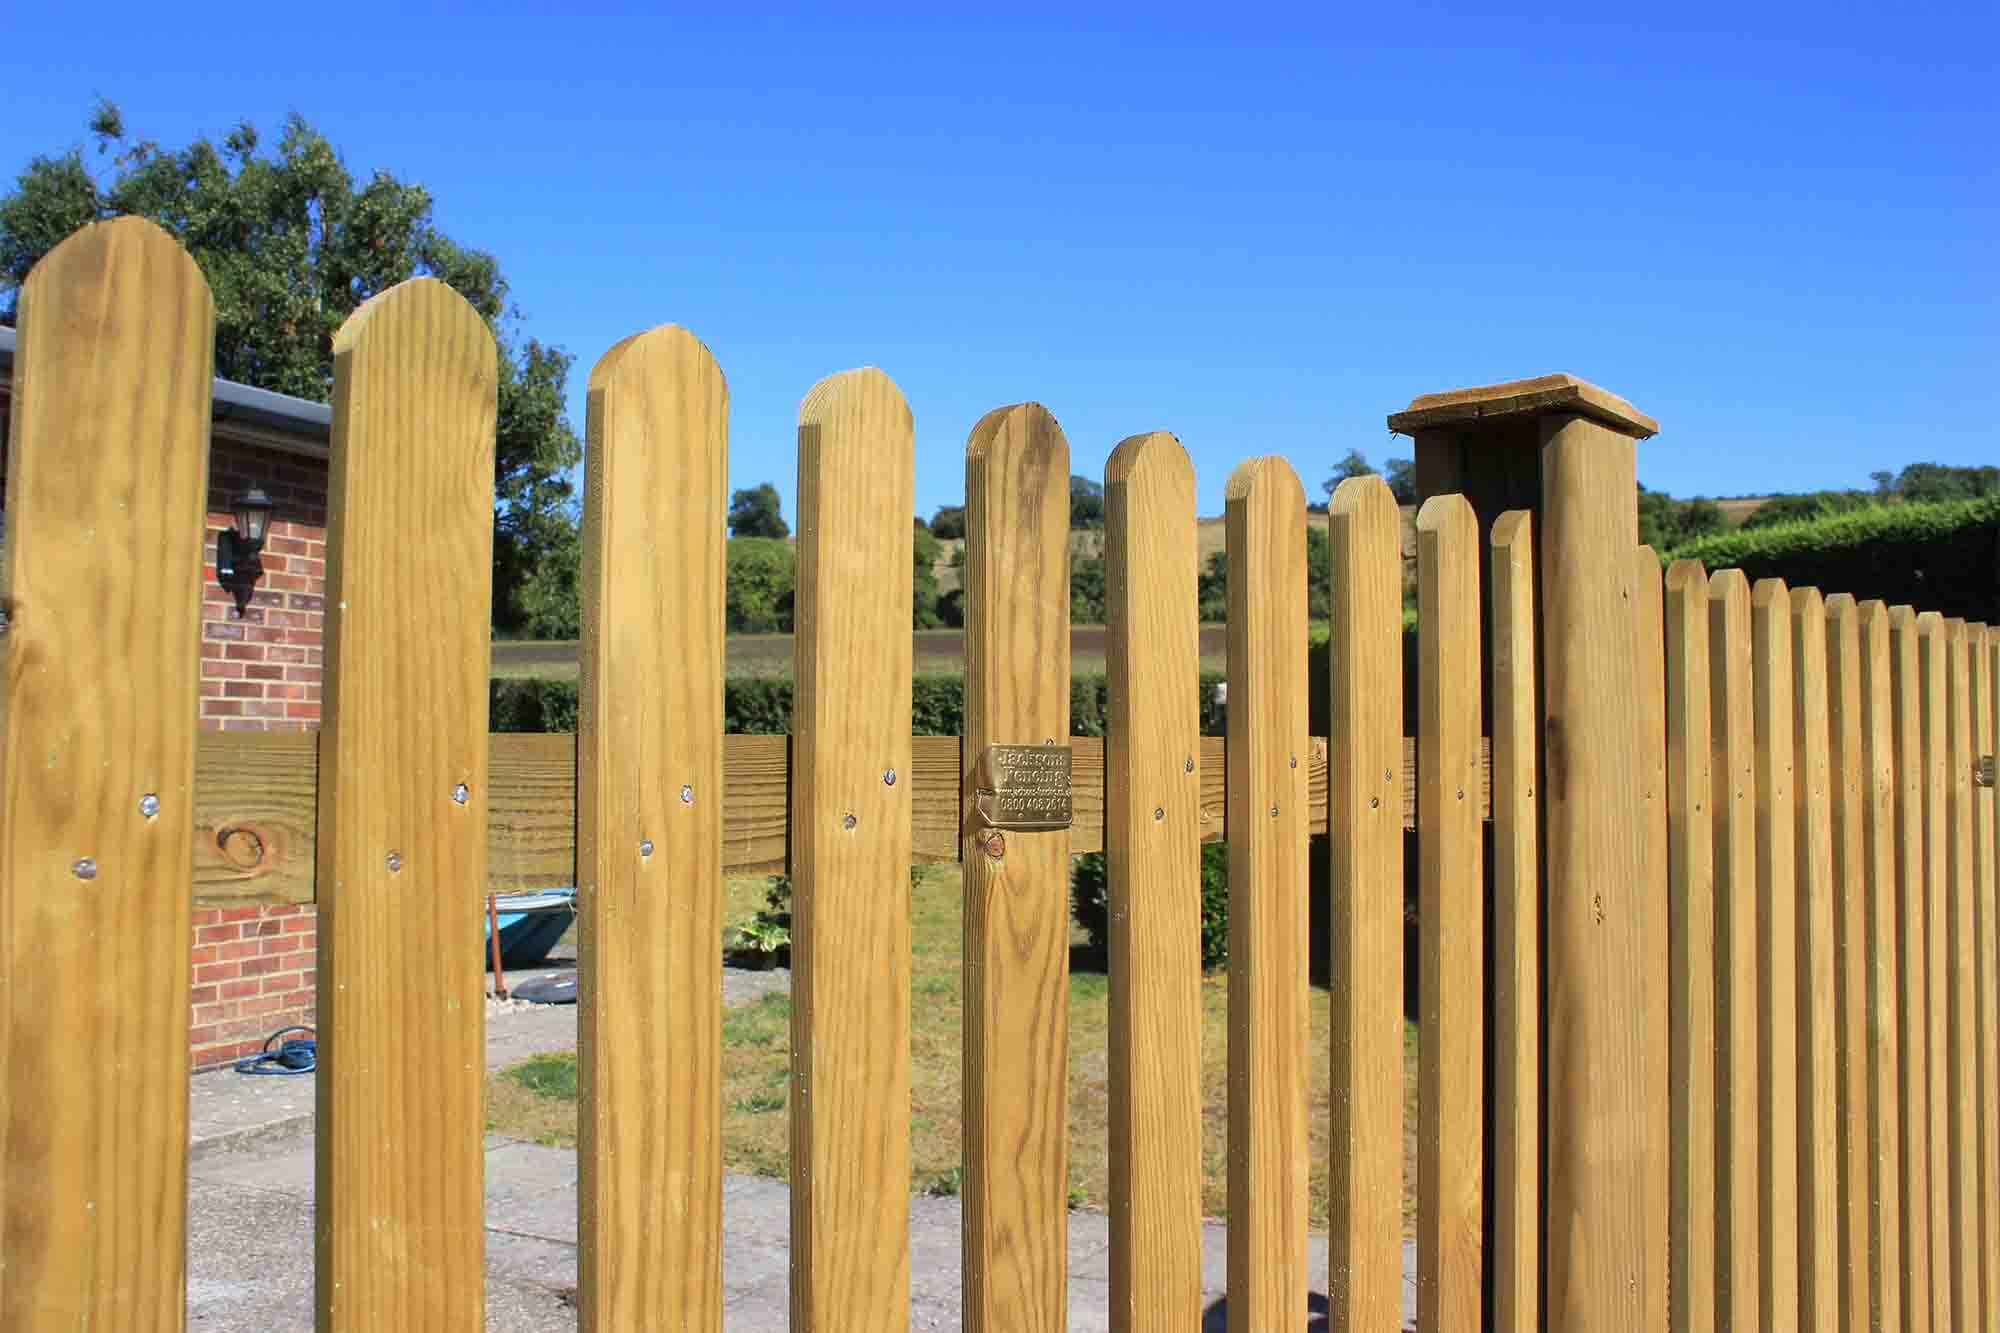 Jacksons Mitre fence panels